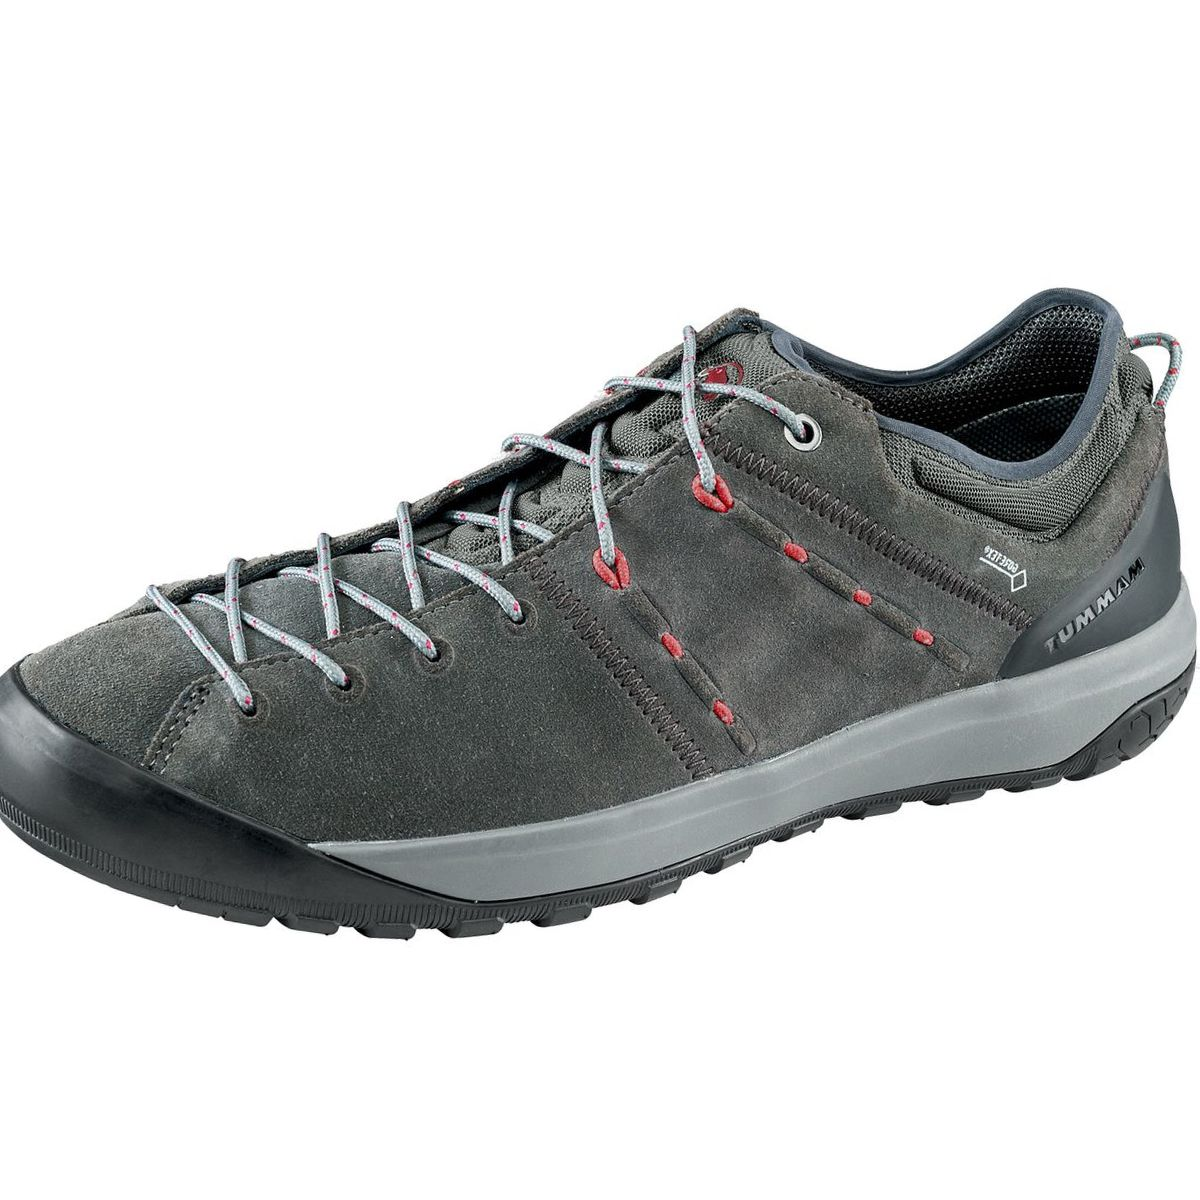 Mammut Hueco Low GTX Shoe - Men's